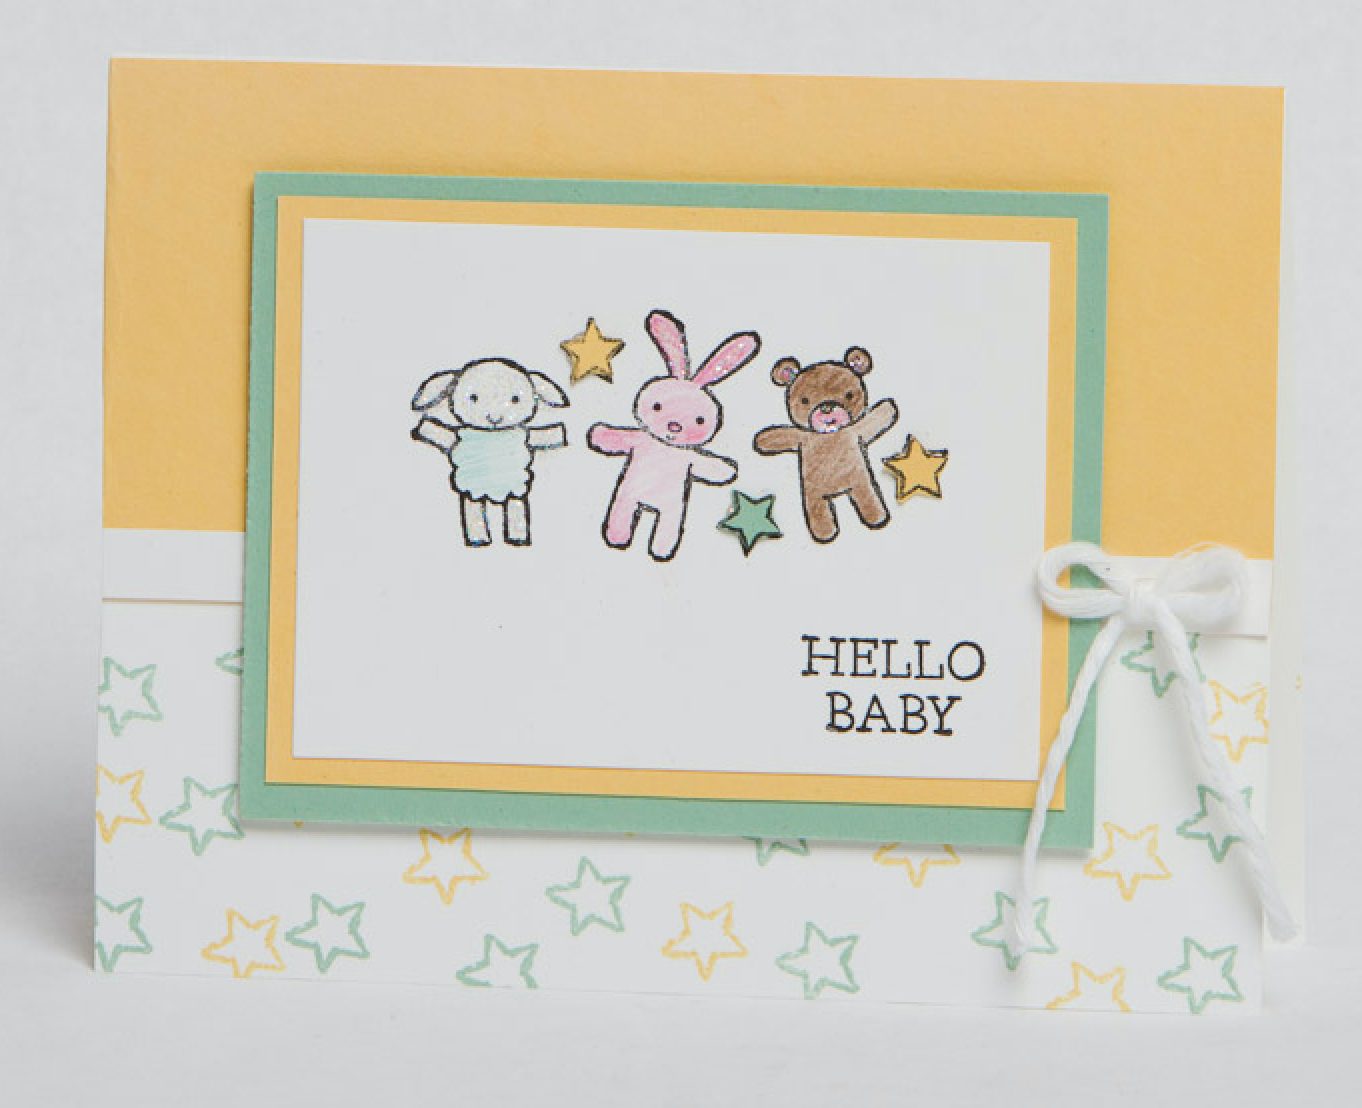 33 best su moon baby images on Pinterest   Cardmaking, Baby cards ...